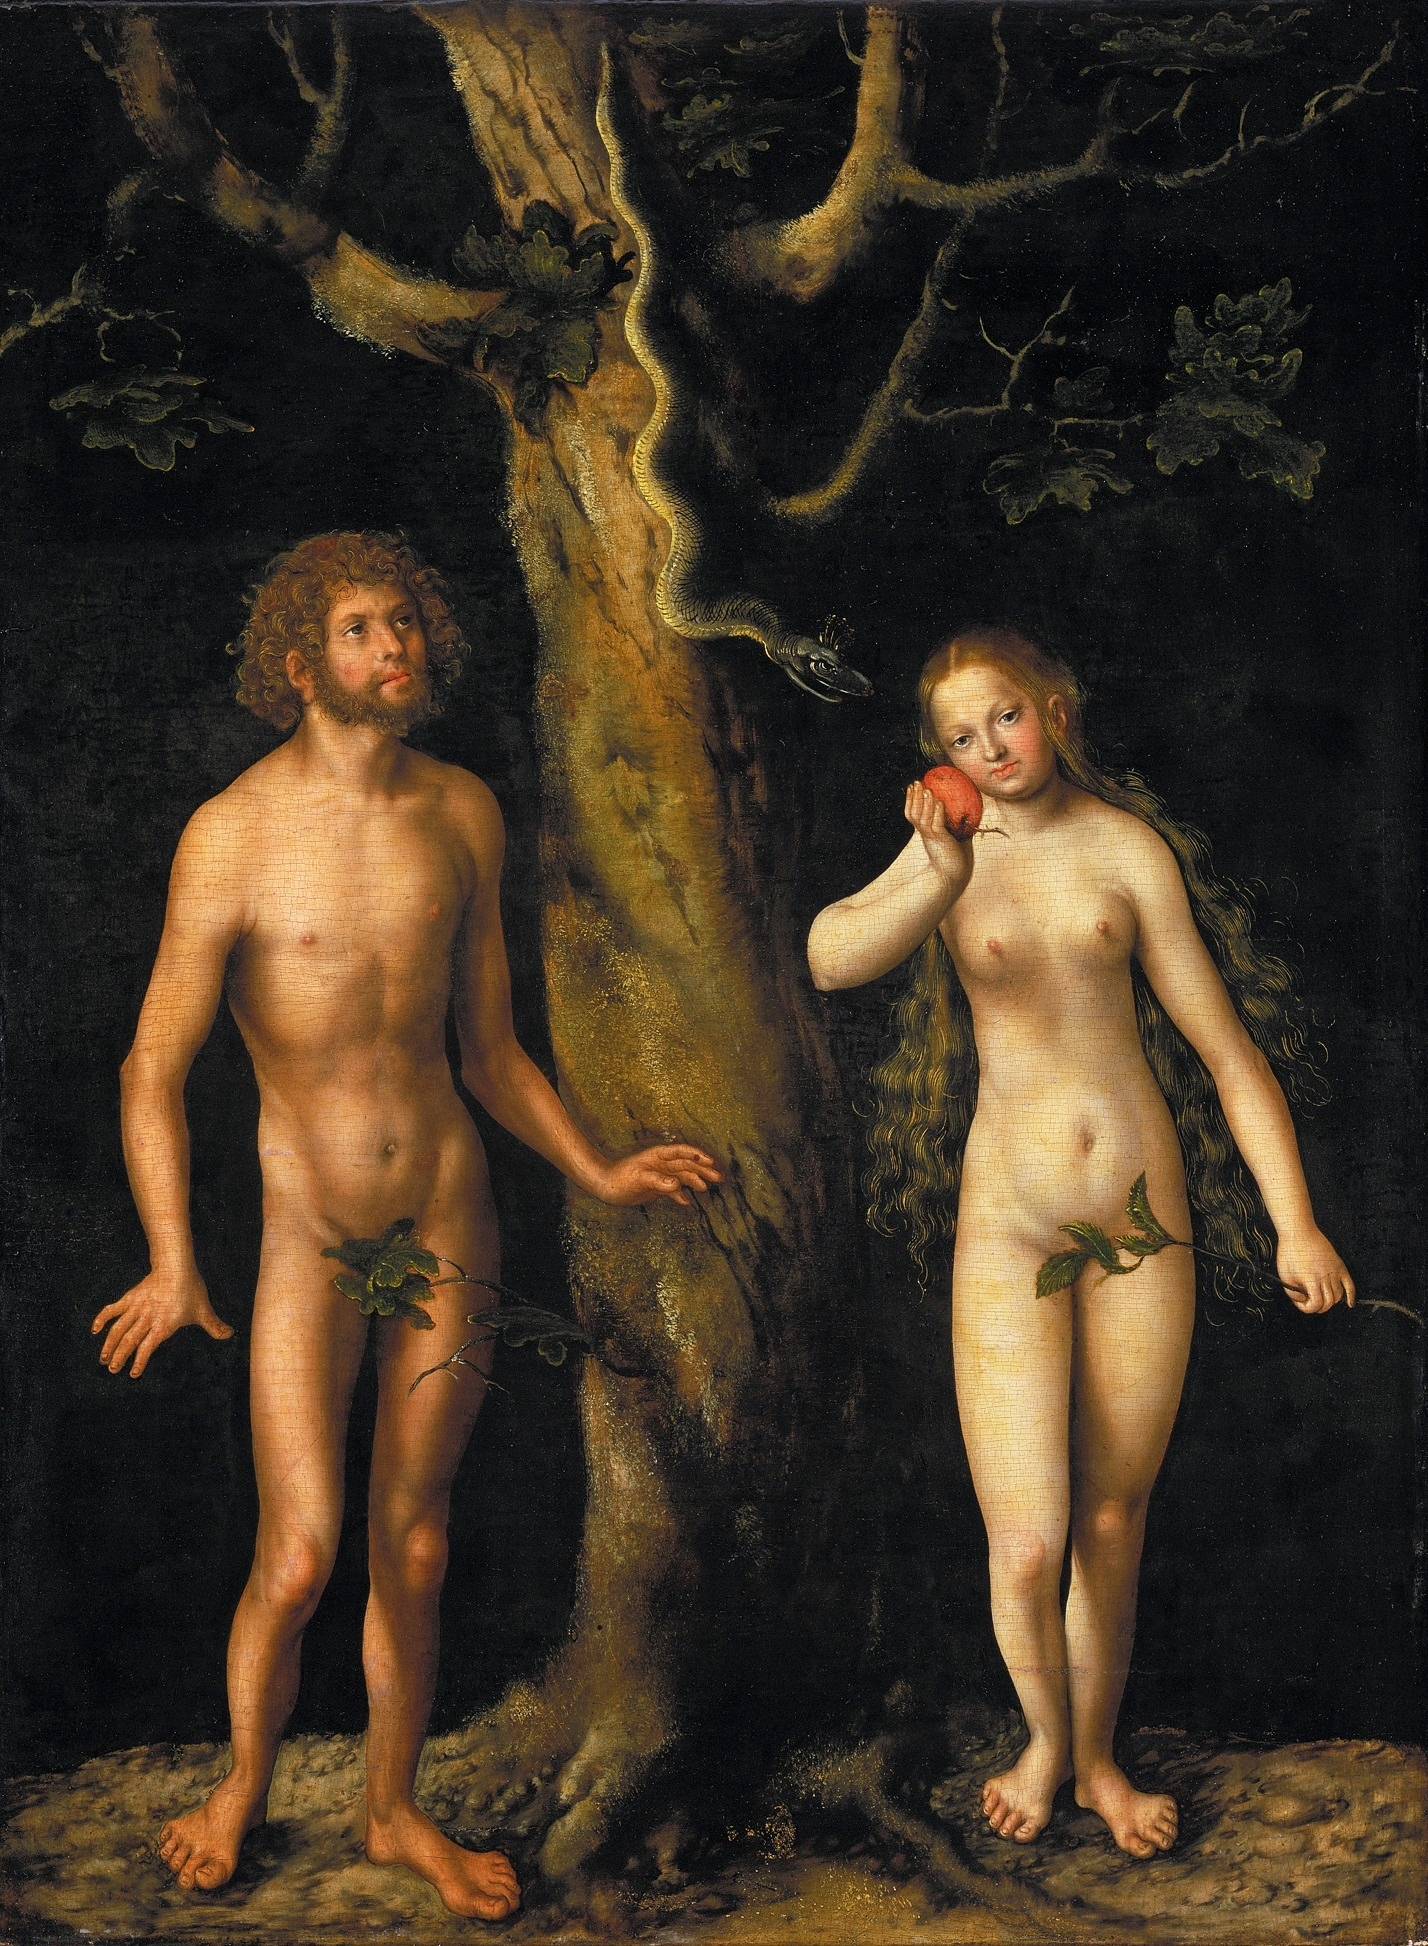 Adam and Eve in the Garden of Eden [Lucas Cranach the Elder [Public domain], via Wikimedia Commons